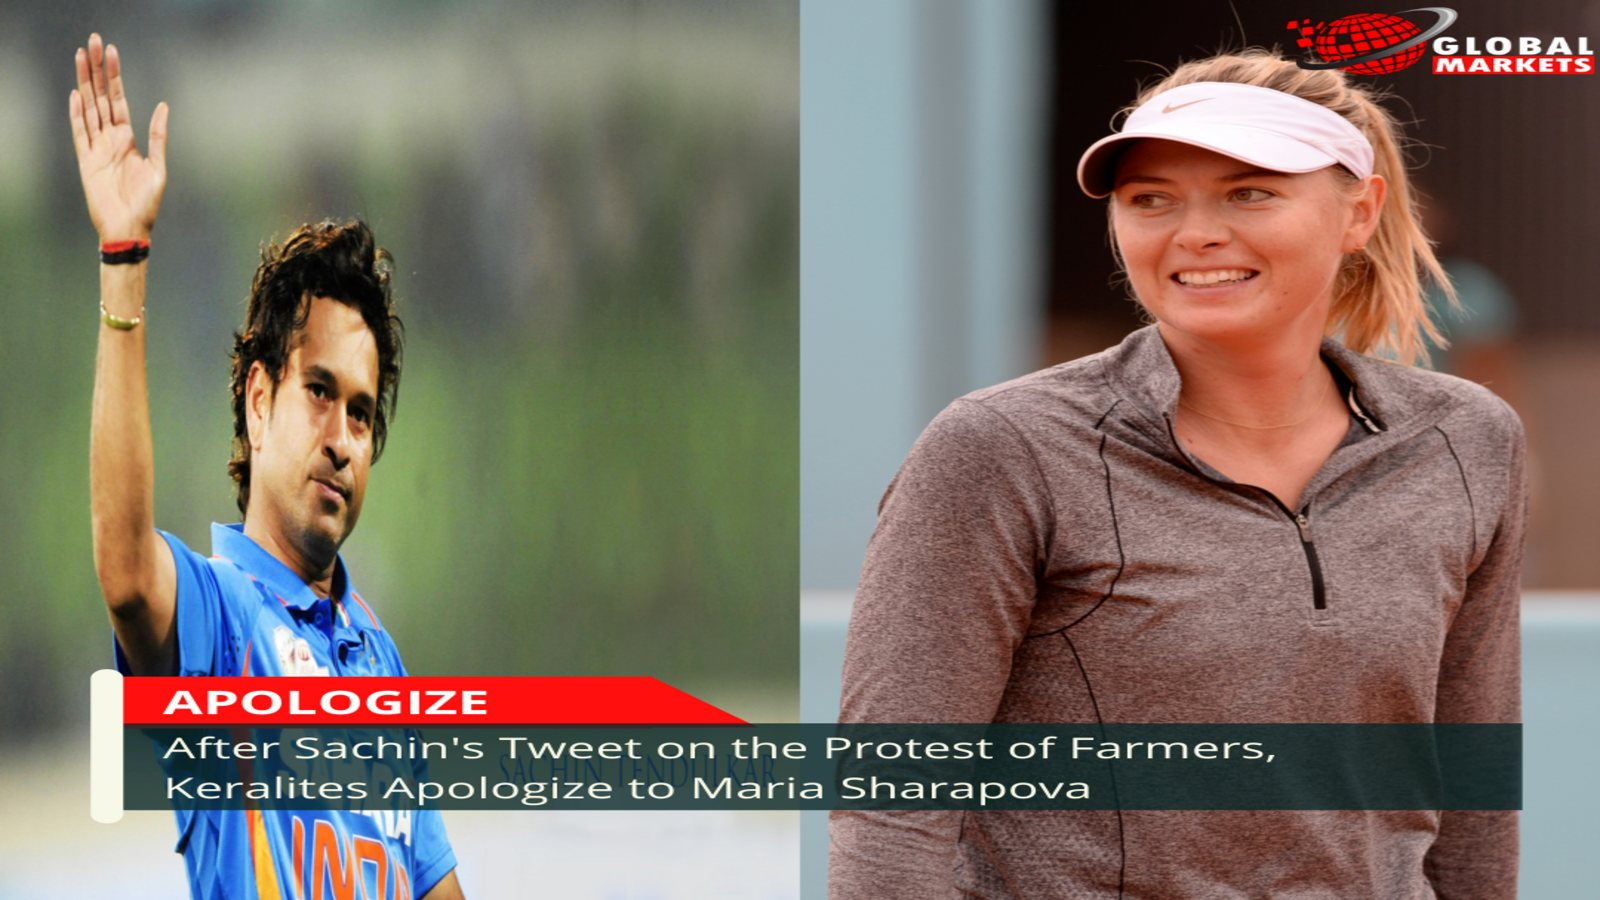 After Sachin's Tweet on the Protest of Farmers, Keralites Apologize to Maria Sharapova